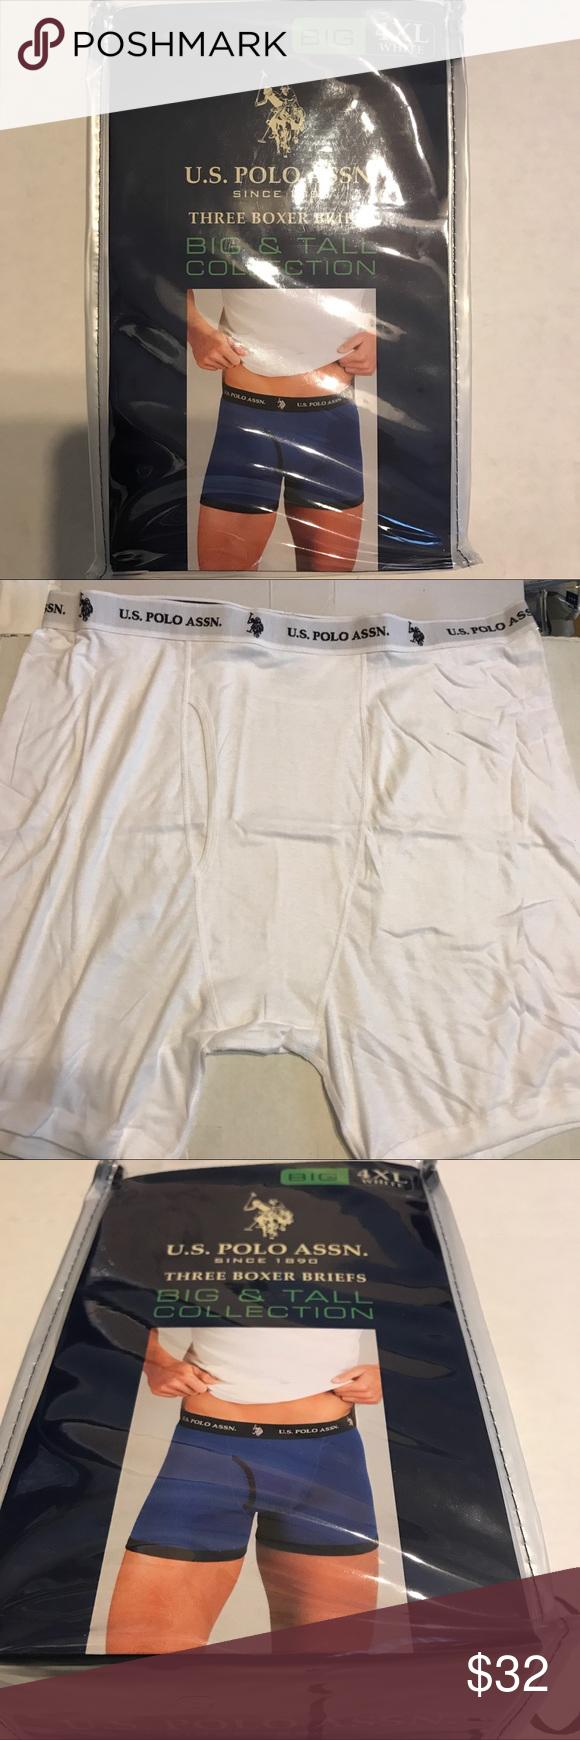 5627012ca83b U S Polo Assn Boxer Briefs 4XL White 3-pack U. S. Polo Assn. Big 3XL size  Mens White Boxer Briefs. 100% cotton. See photo of size chart.